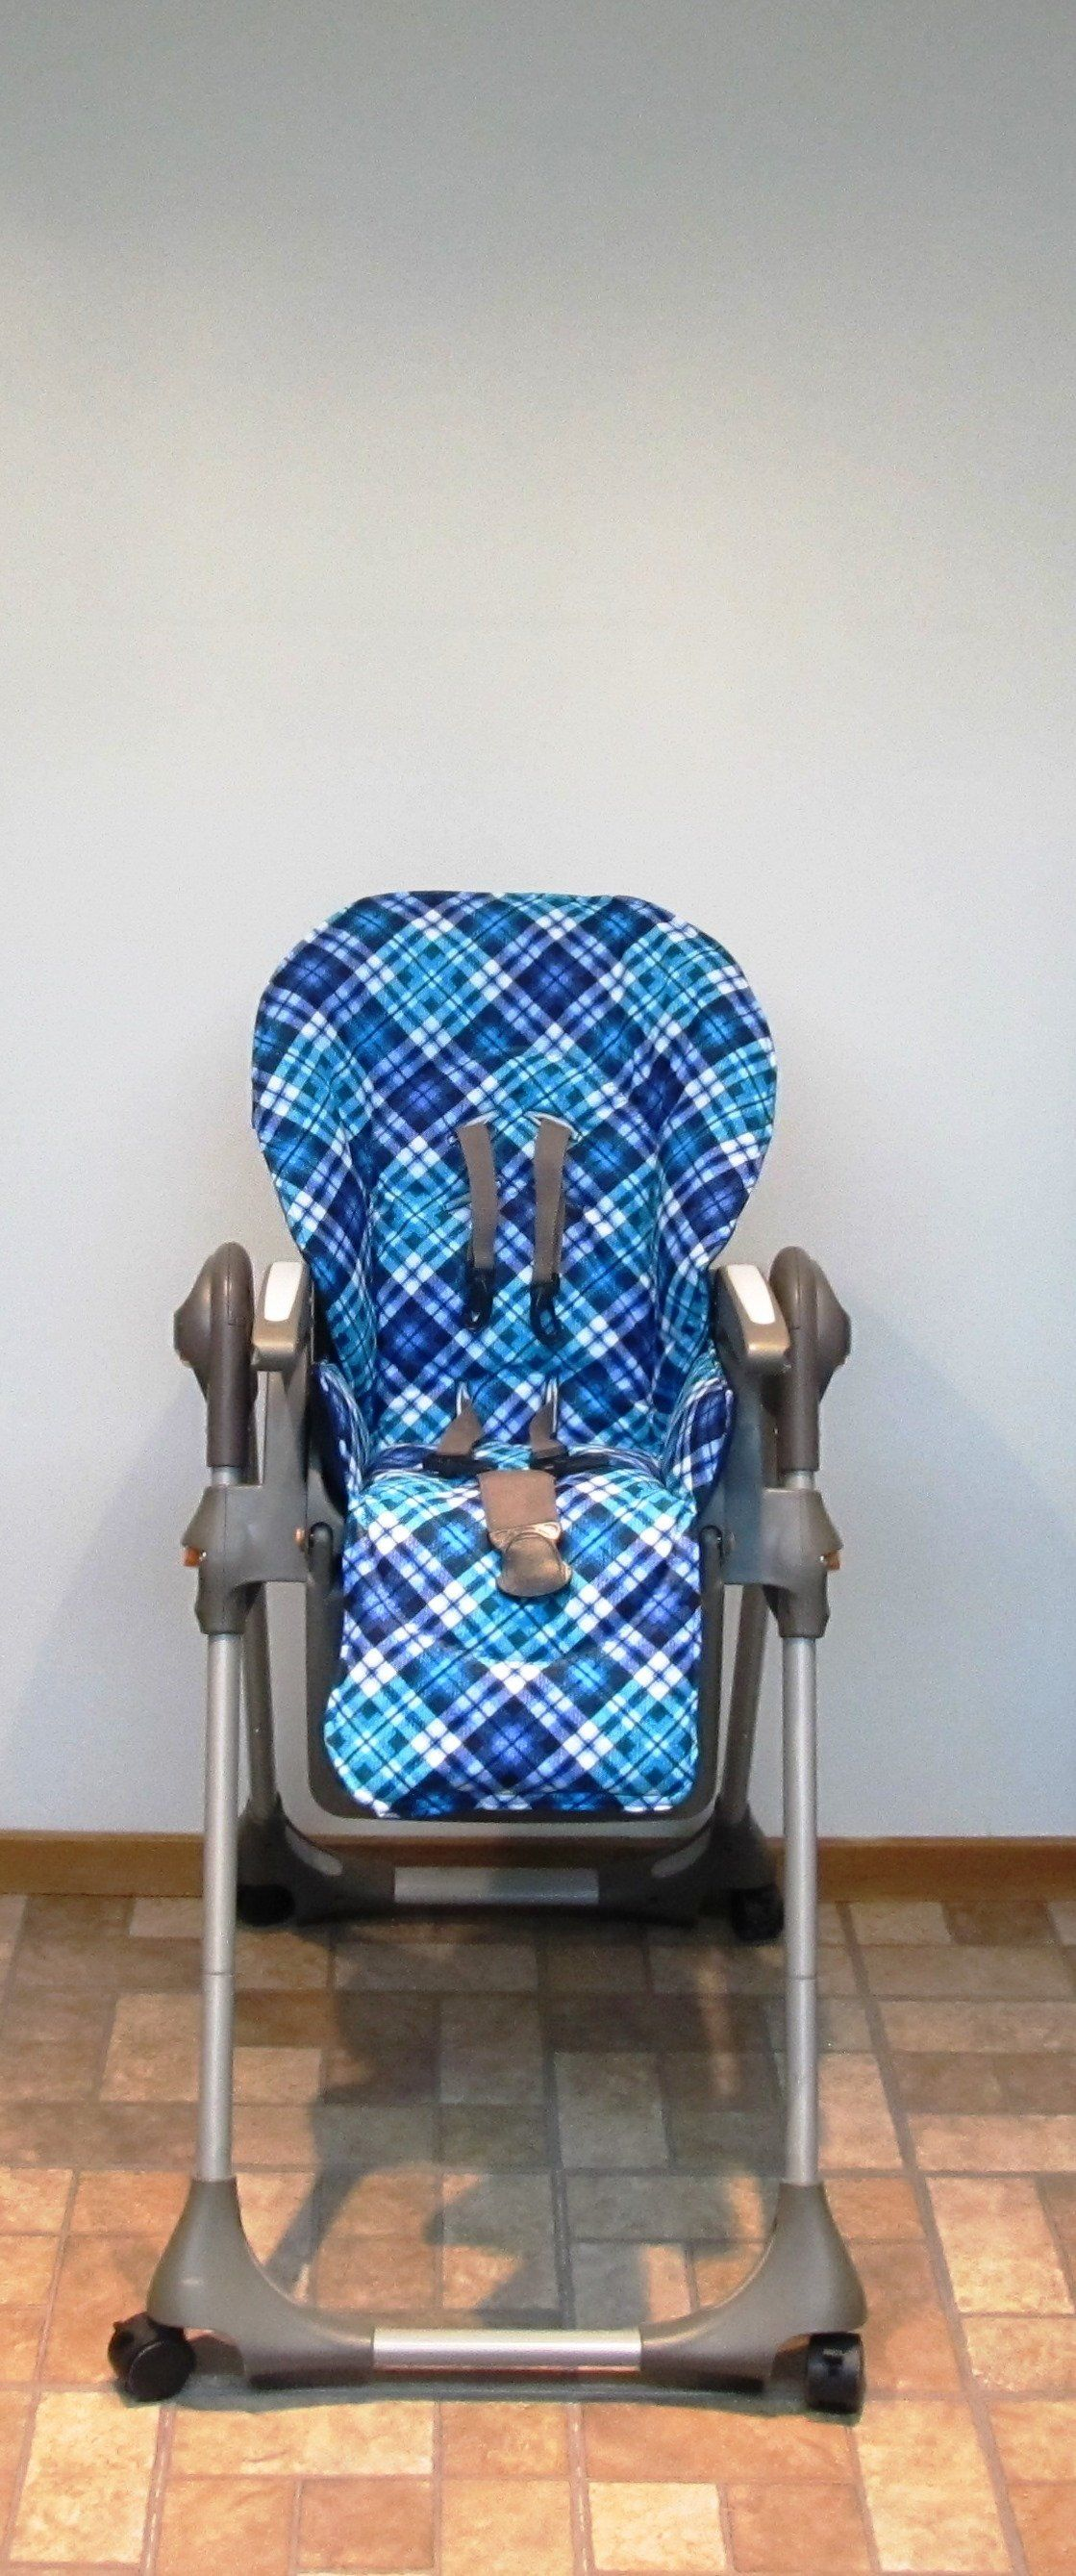 Chicco padded replacement high chair cover blue and teal